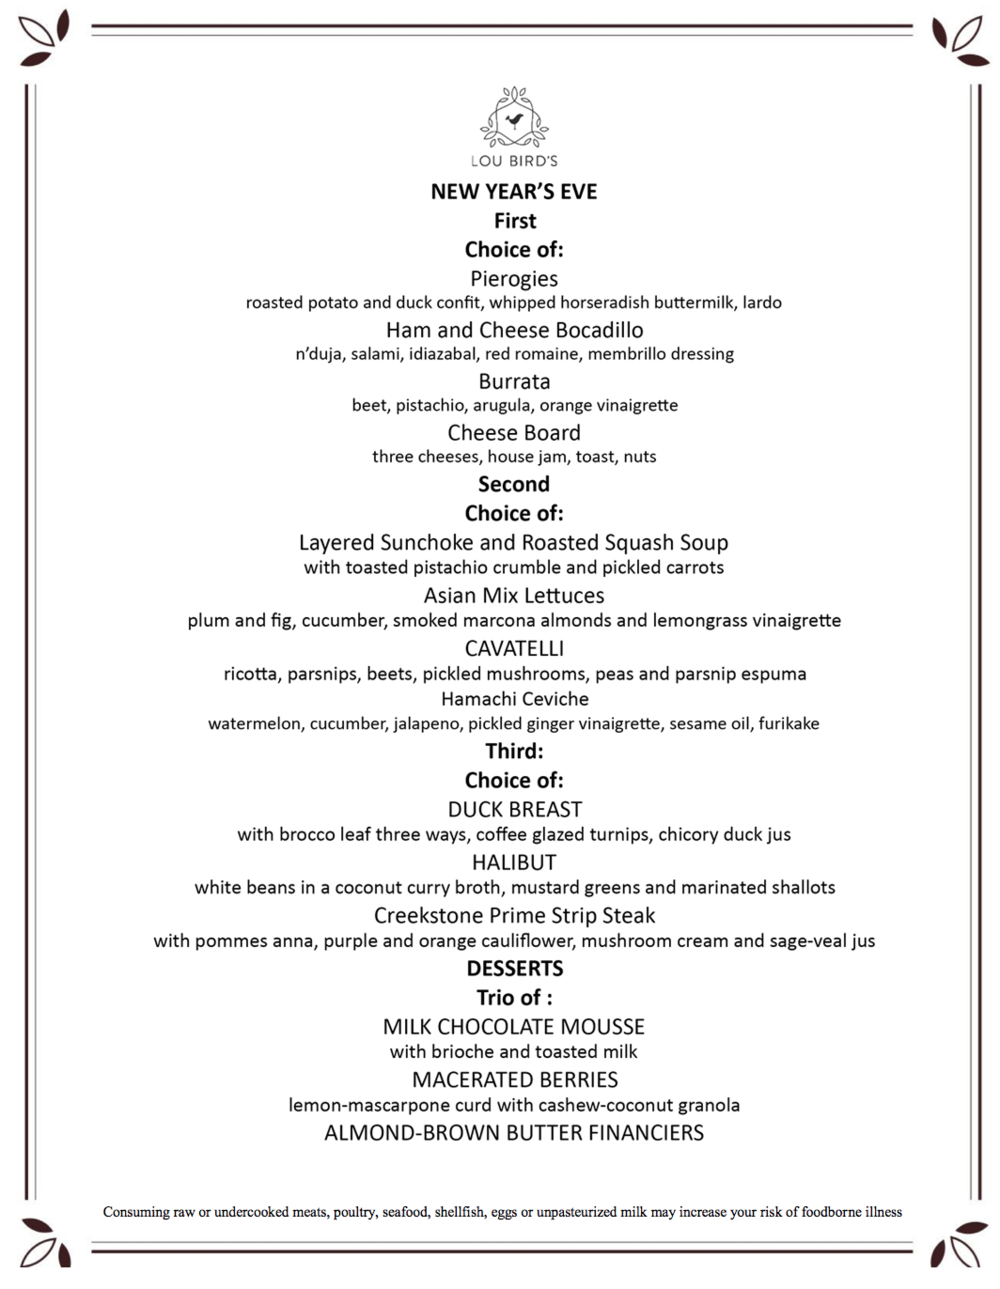 2018 NEW YEARS EVE MENU   |  Click graphic to download a PDF of the menu